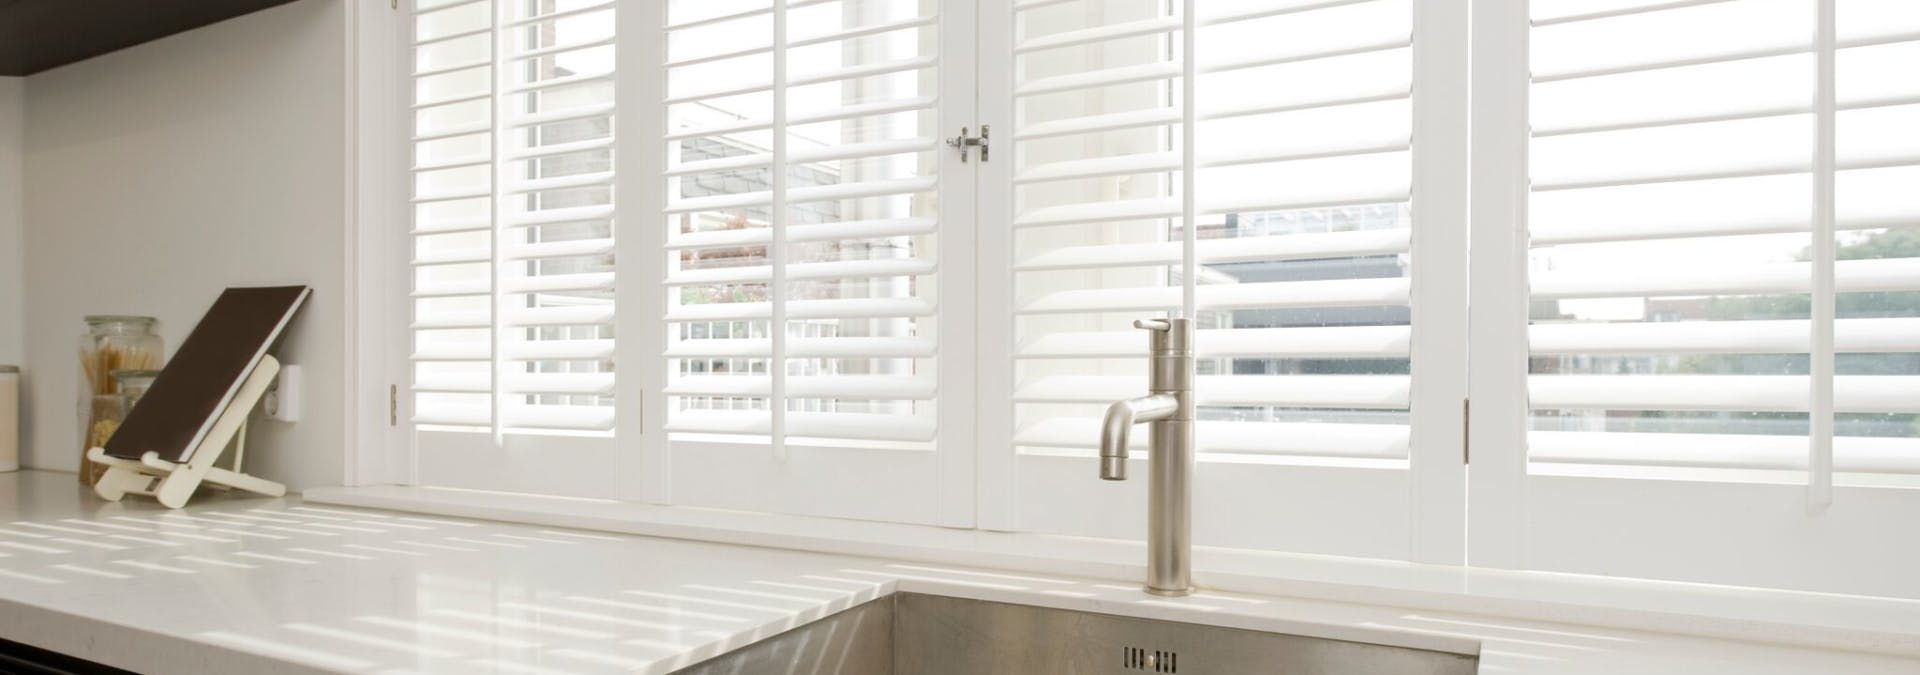 Window coverings of idaho  venluree offers a free nationwide inhome consultation and measuring